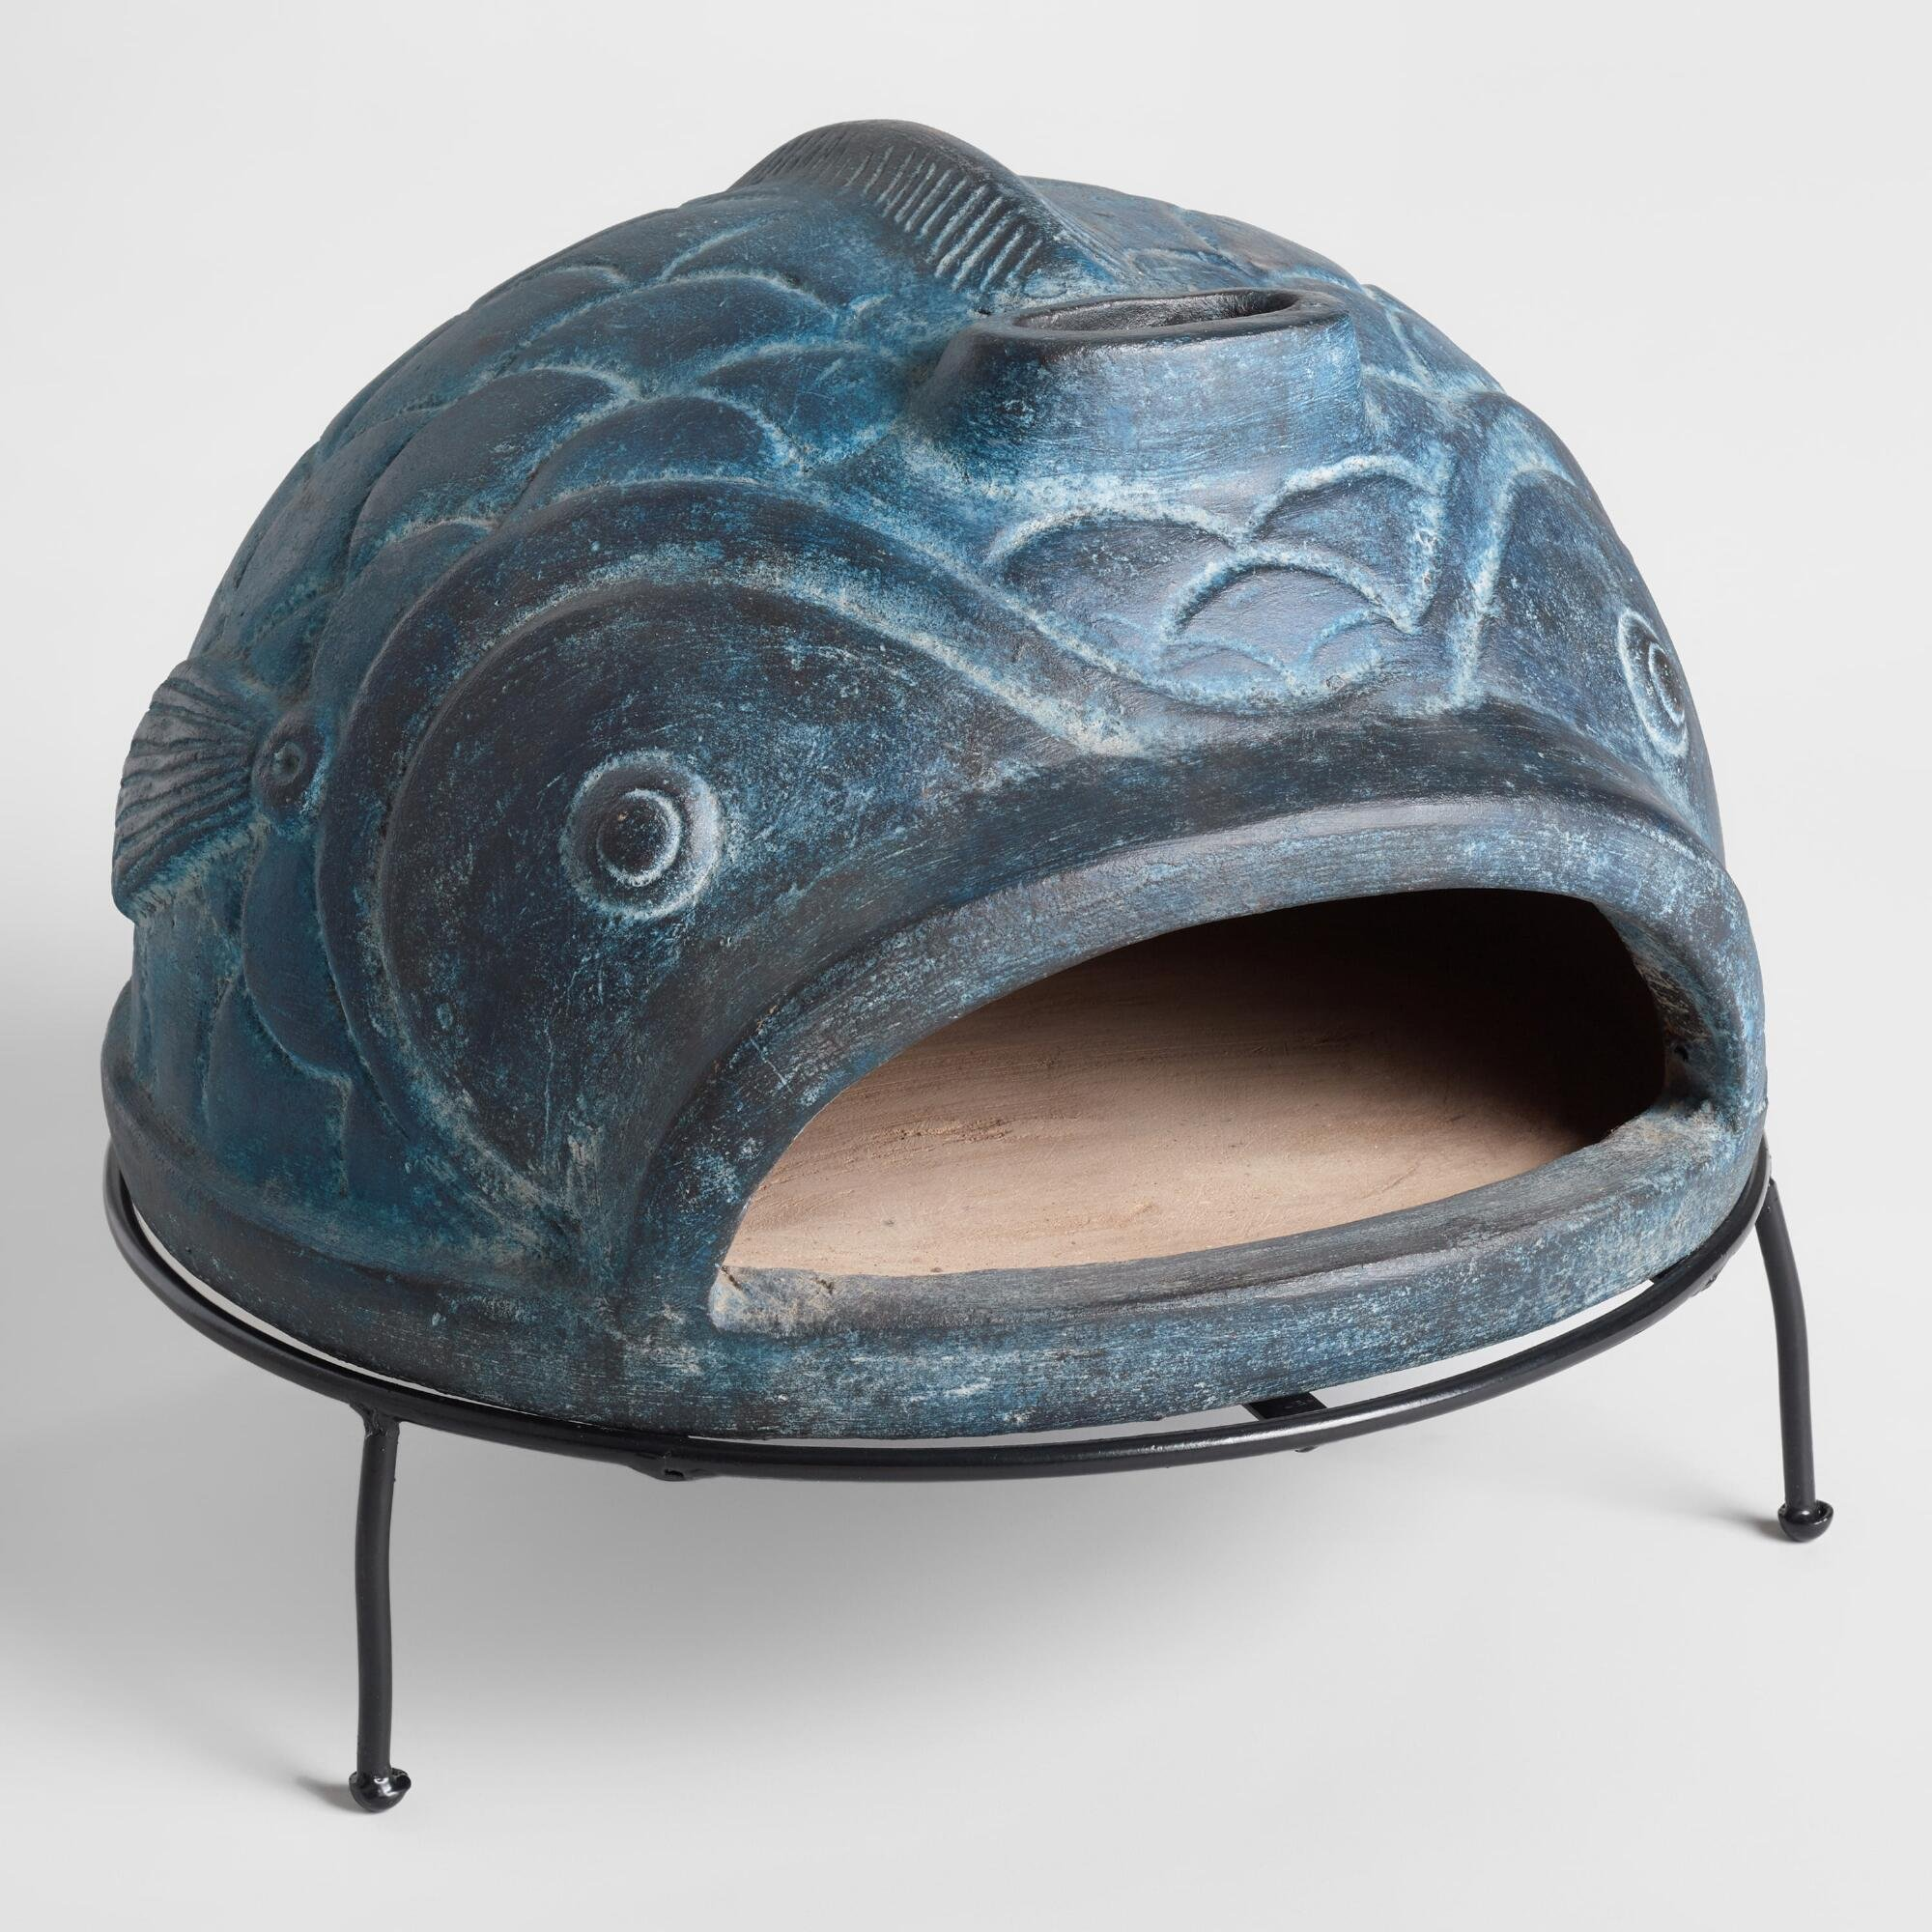 Decorative Blue Fish Terracotta Pizza Oven with Metal Grill Stand